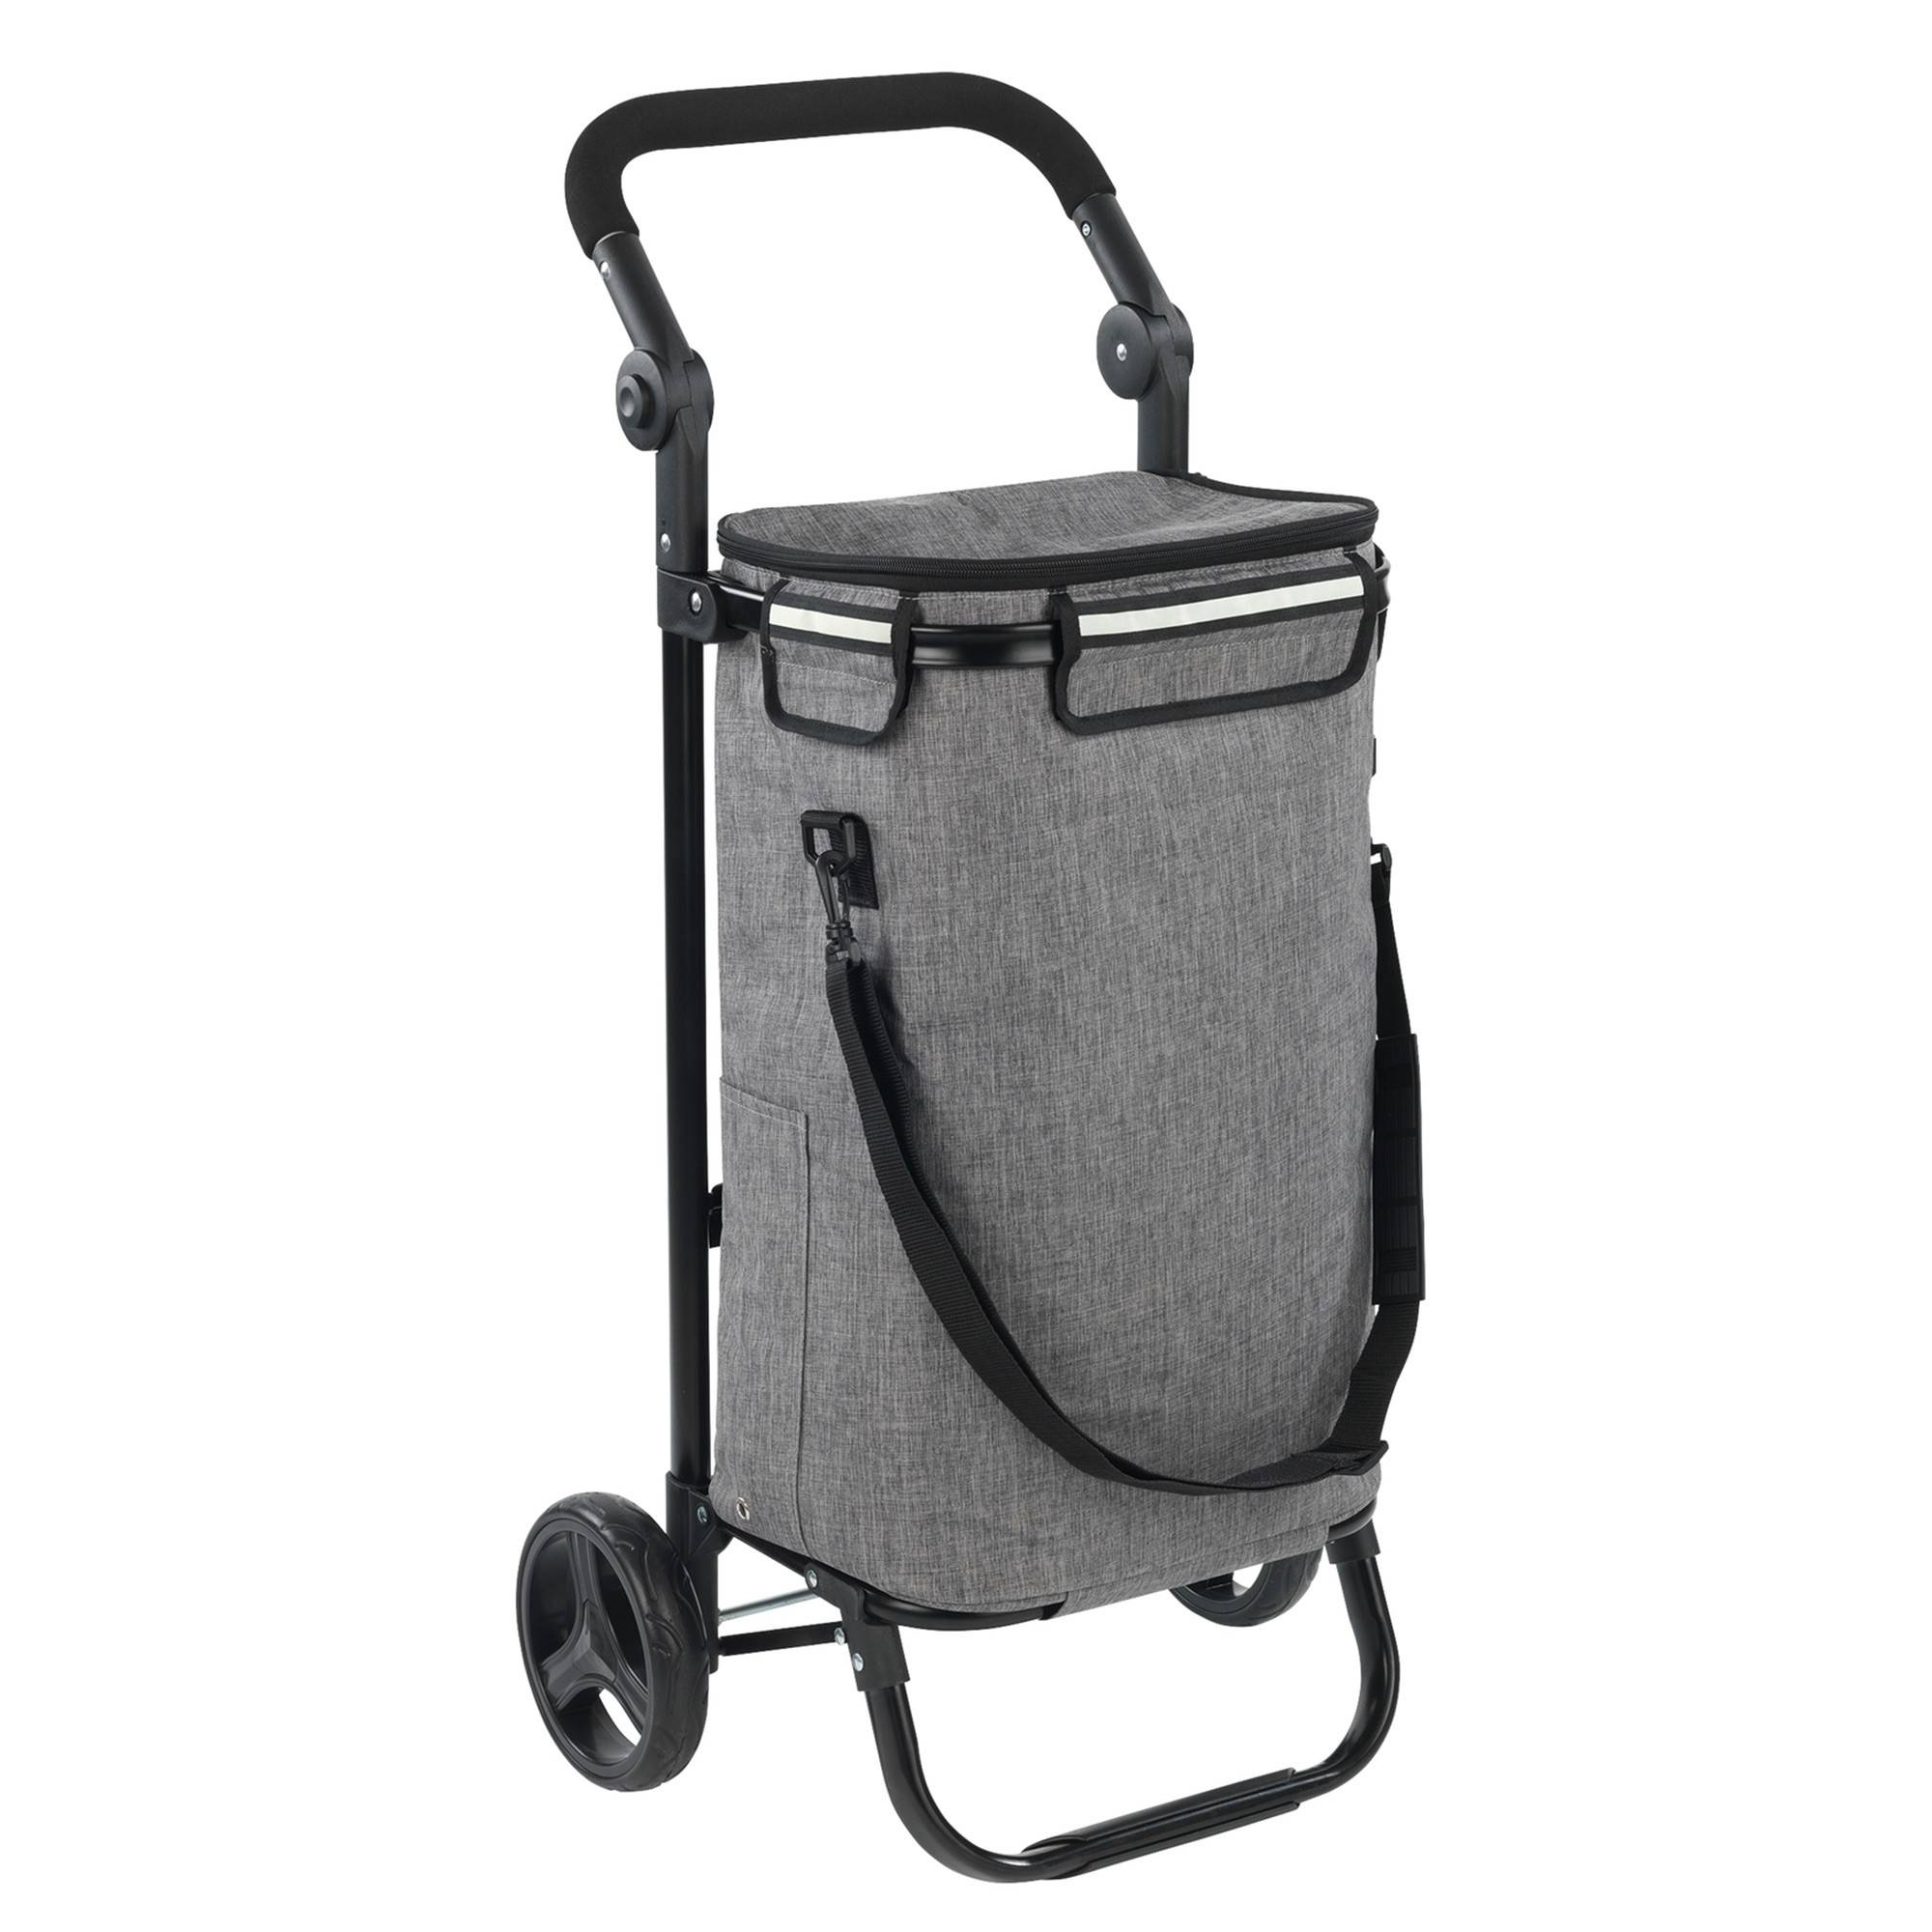 Chariot de courses Thermo & Comfort - Gris - Blancheporte